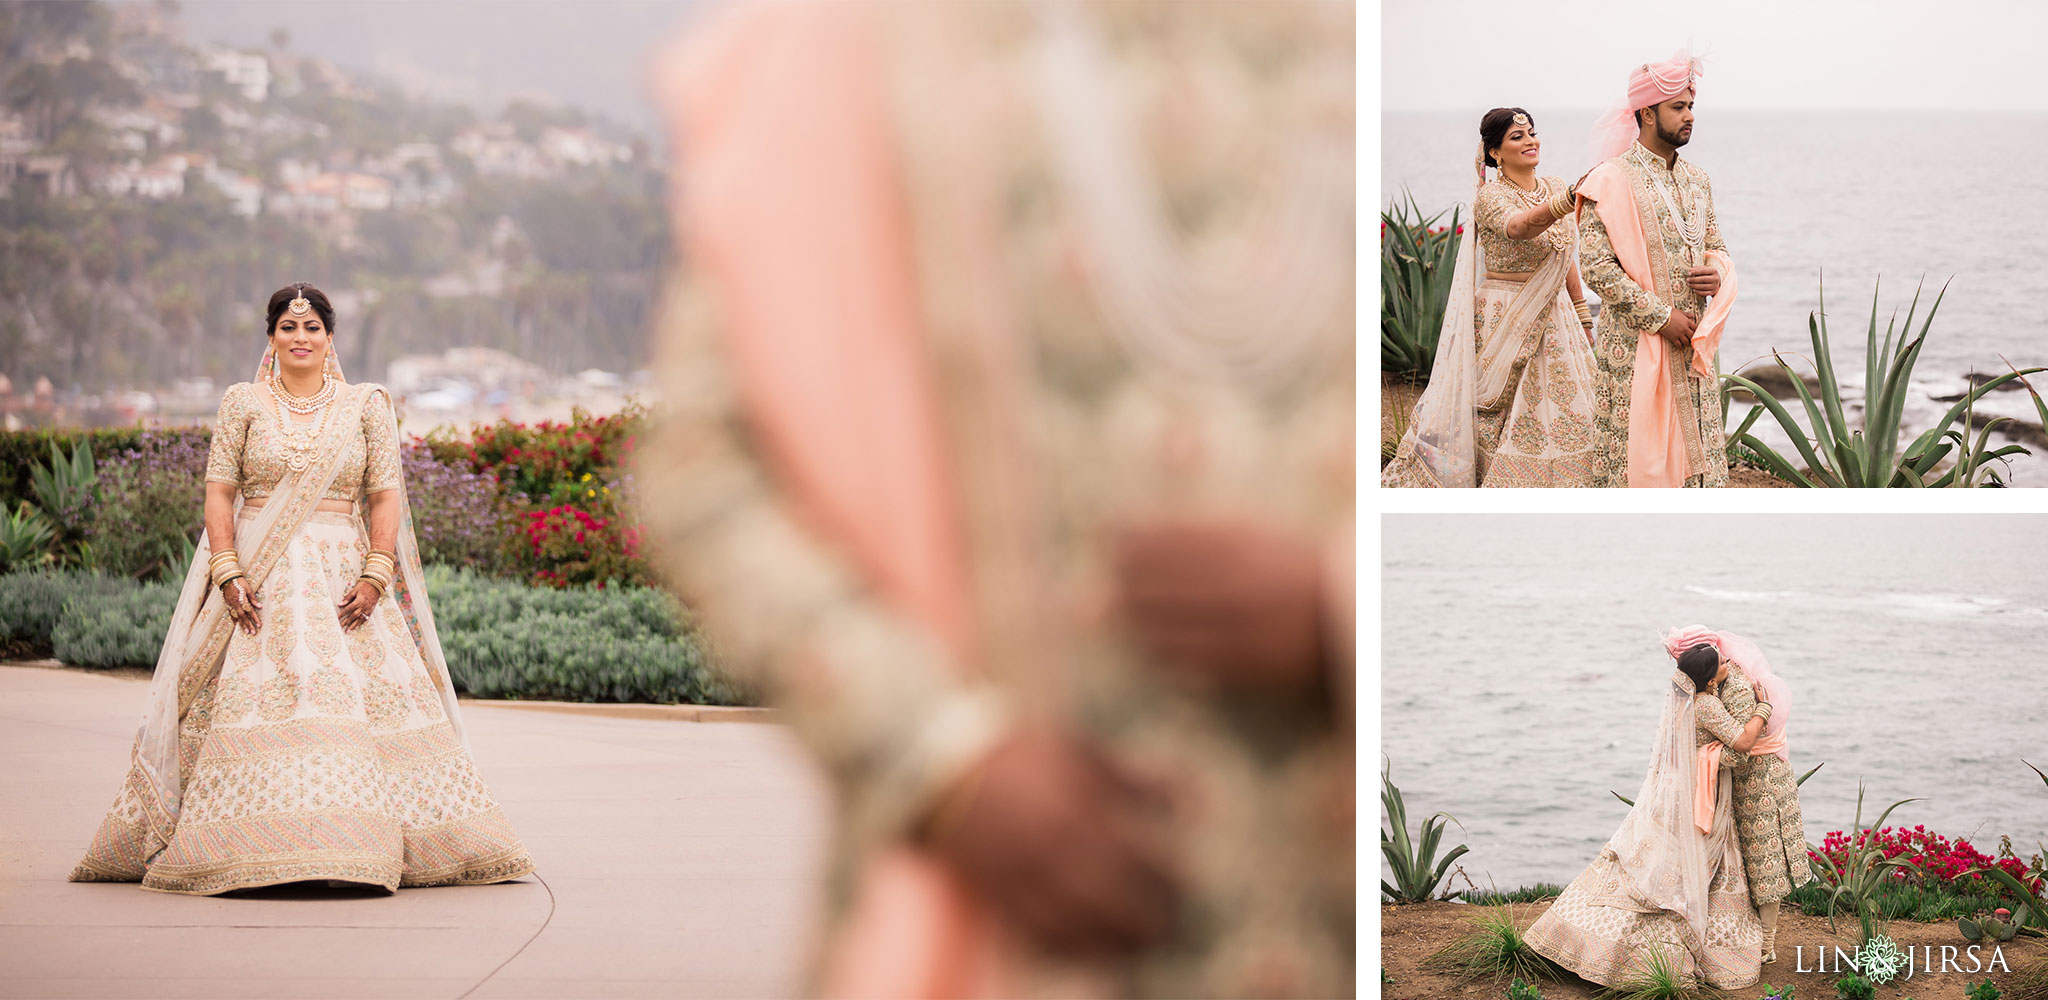 017 montage laguna beach indian couple wedding photography